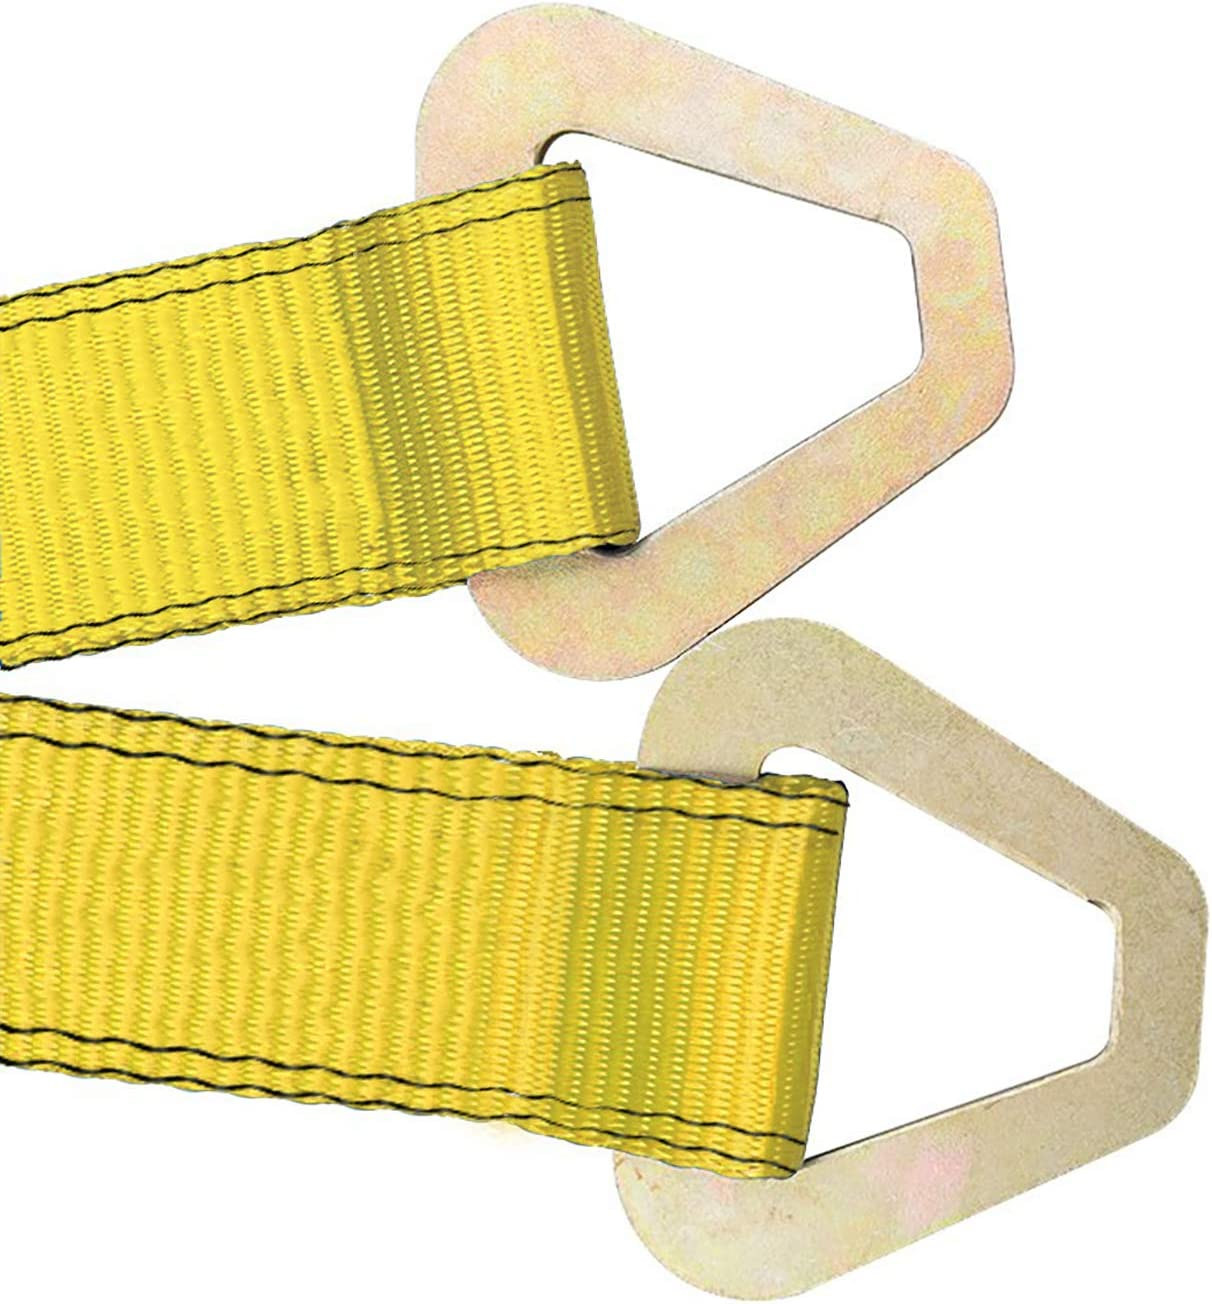 Robbor Axle Straps-2 Pk 36x 2 Premium Car Axle Straps with D-Ring and Protective Sleeve 10,000 lb.Breaking Strength 3,333 lb.Working Load Idea for Low Applications